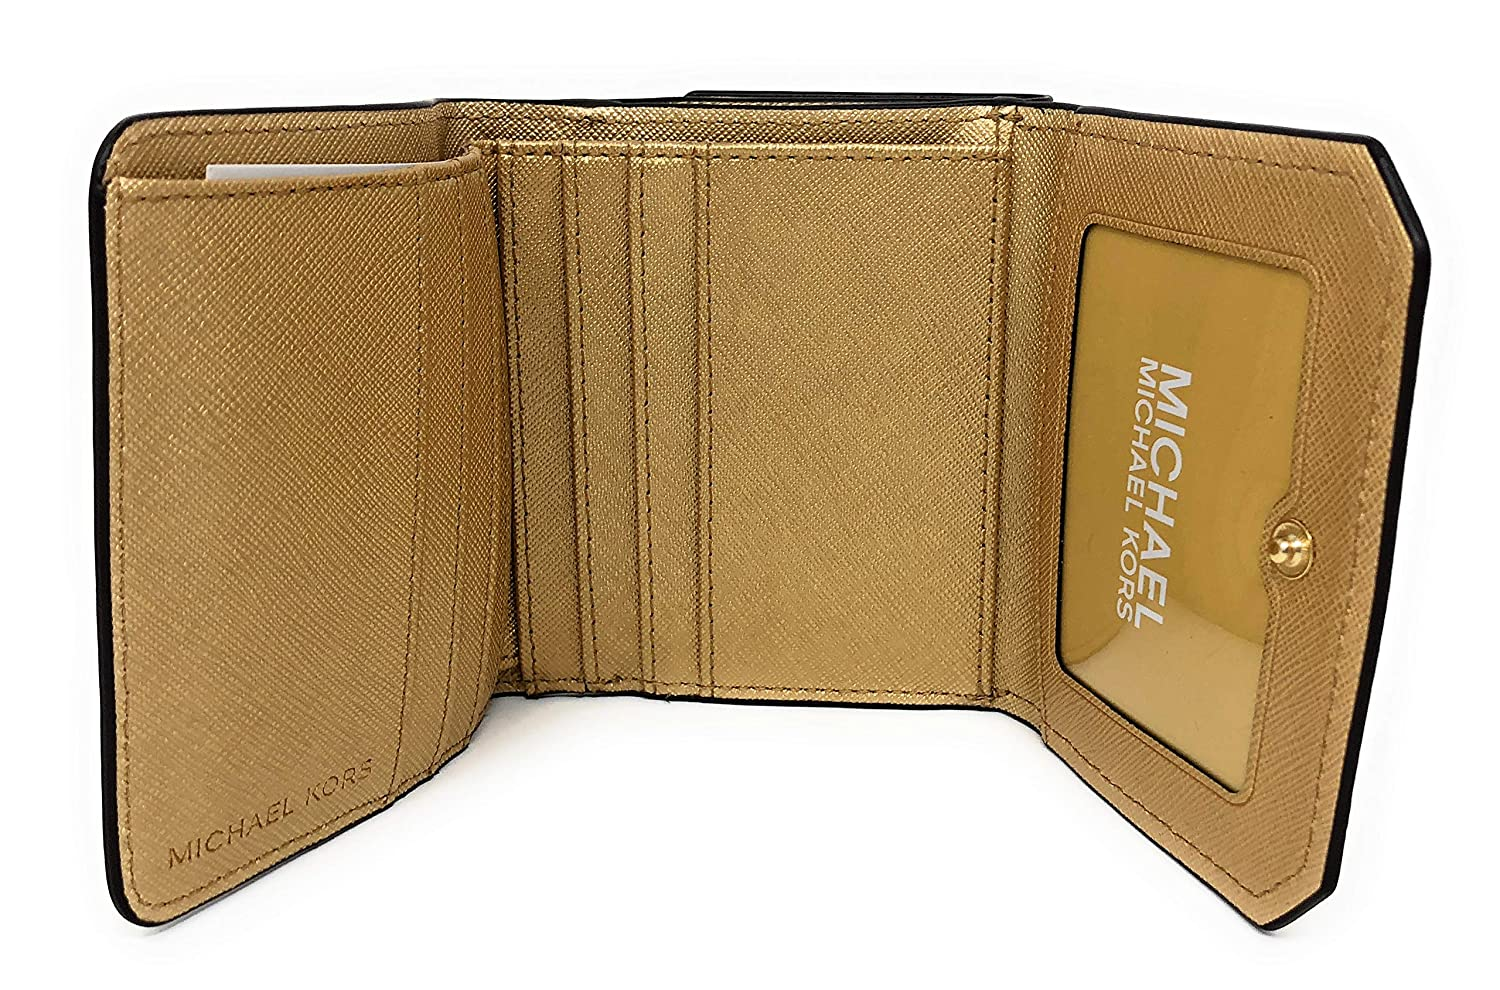 685c05b15e01b Amazon.com  Michael Kors Hayes Medium Trifold Coin Case Leather Wallet in  Gold  AAfashiondistrict